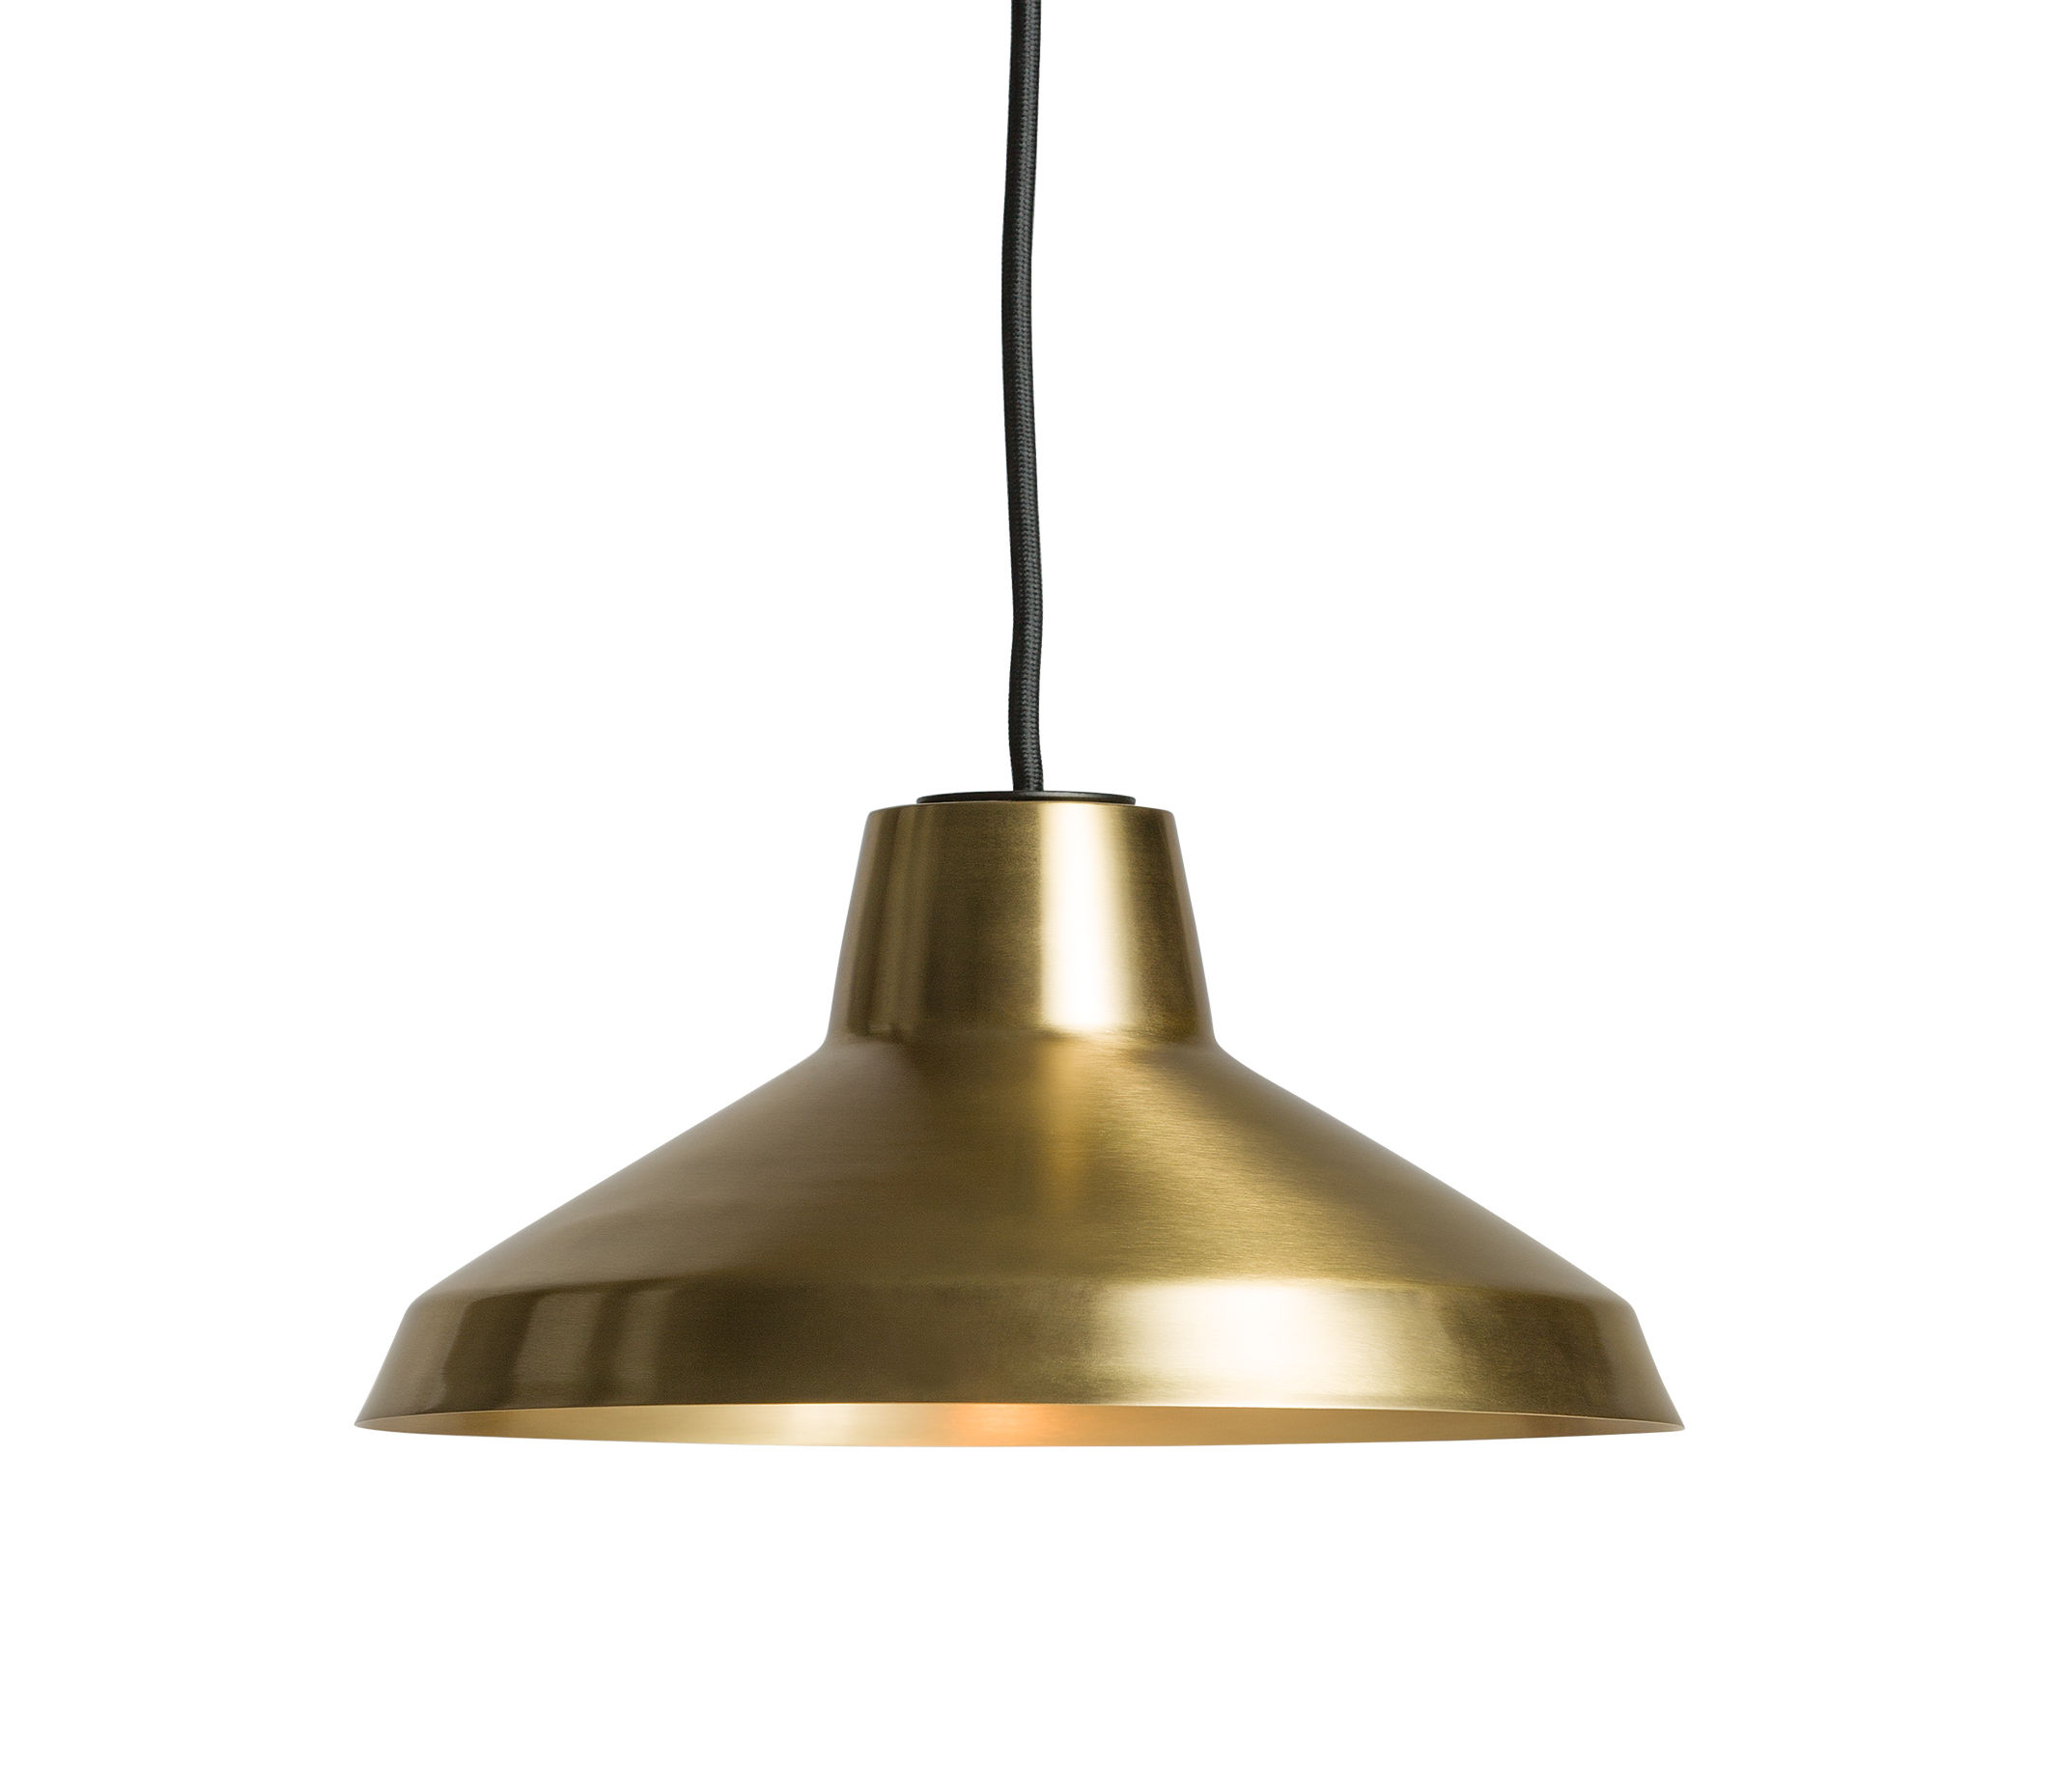 Lighting - Pendant Lighting - Evergreen Small Pendant - Ø 30 cm / Brass by Northern  - Brass - Brushed brass